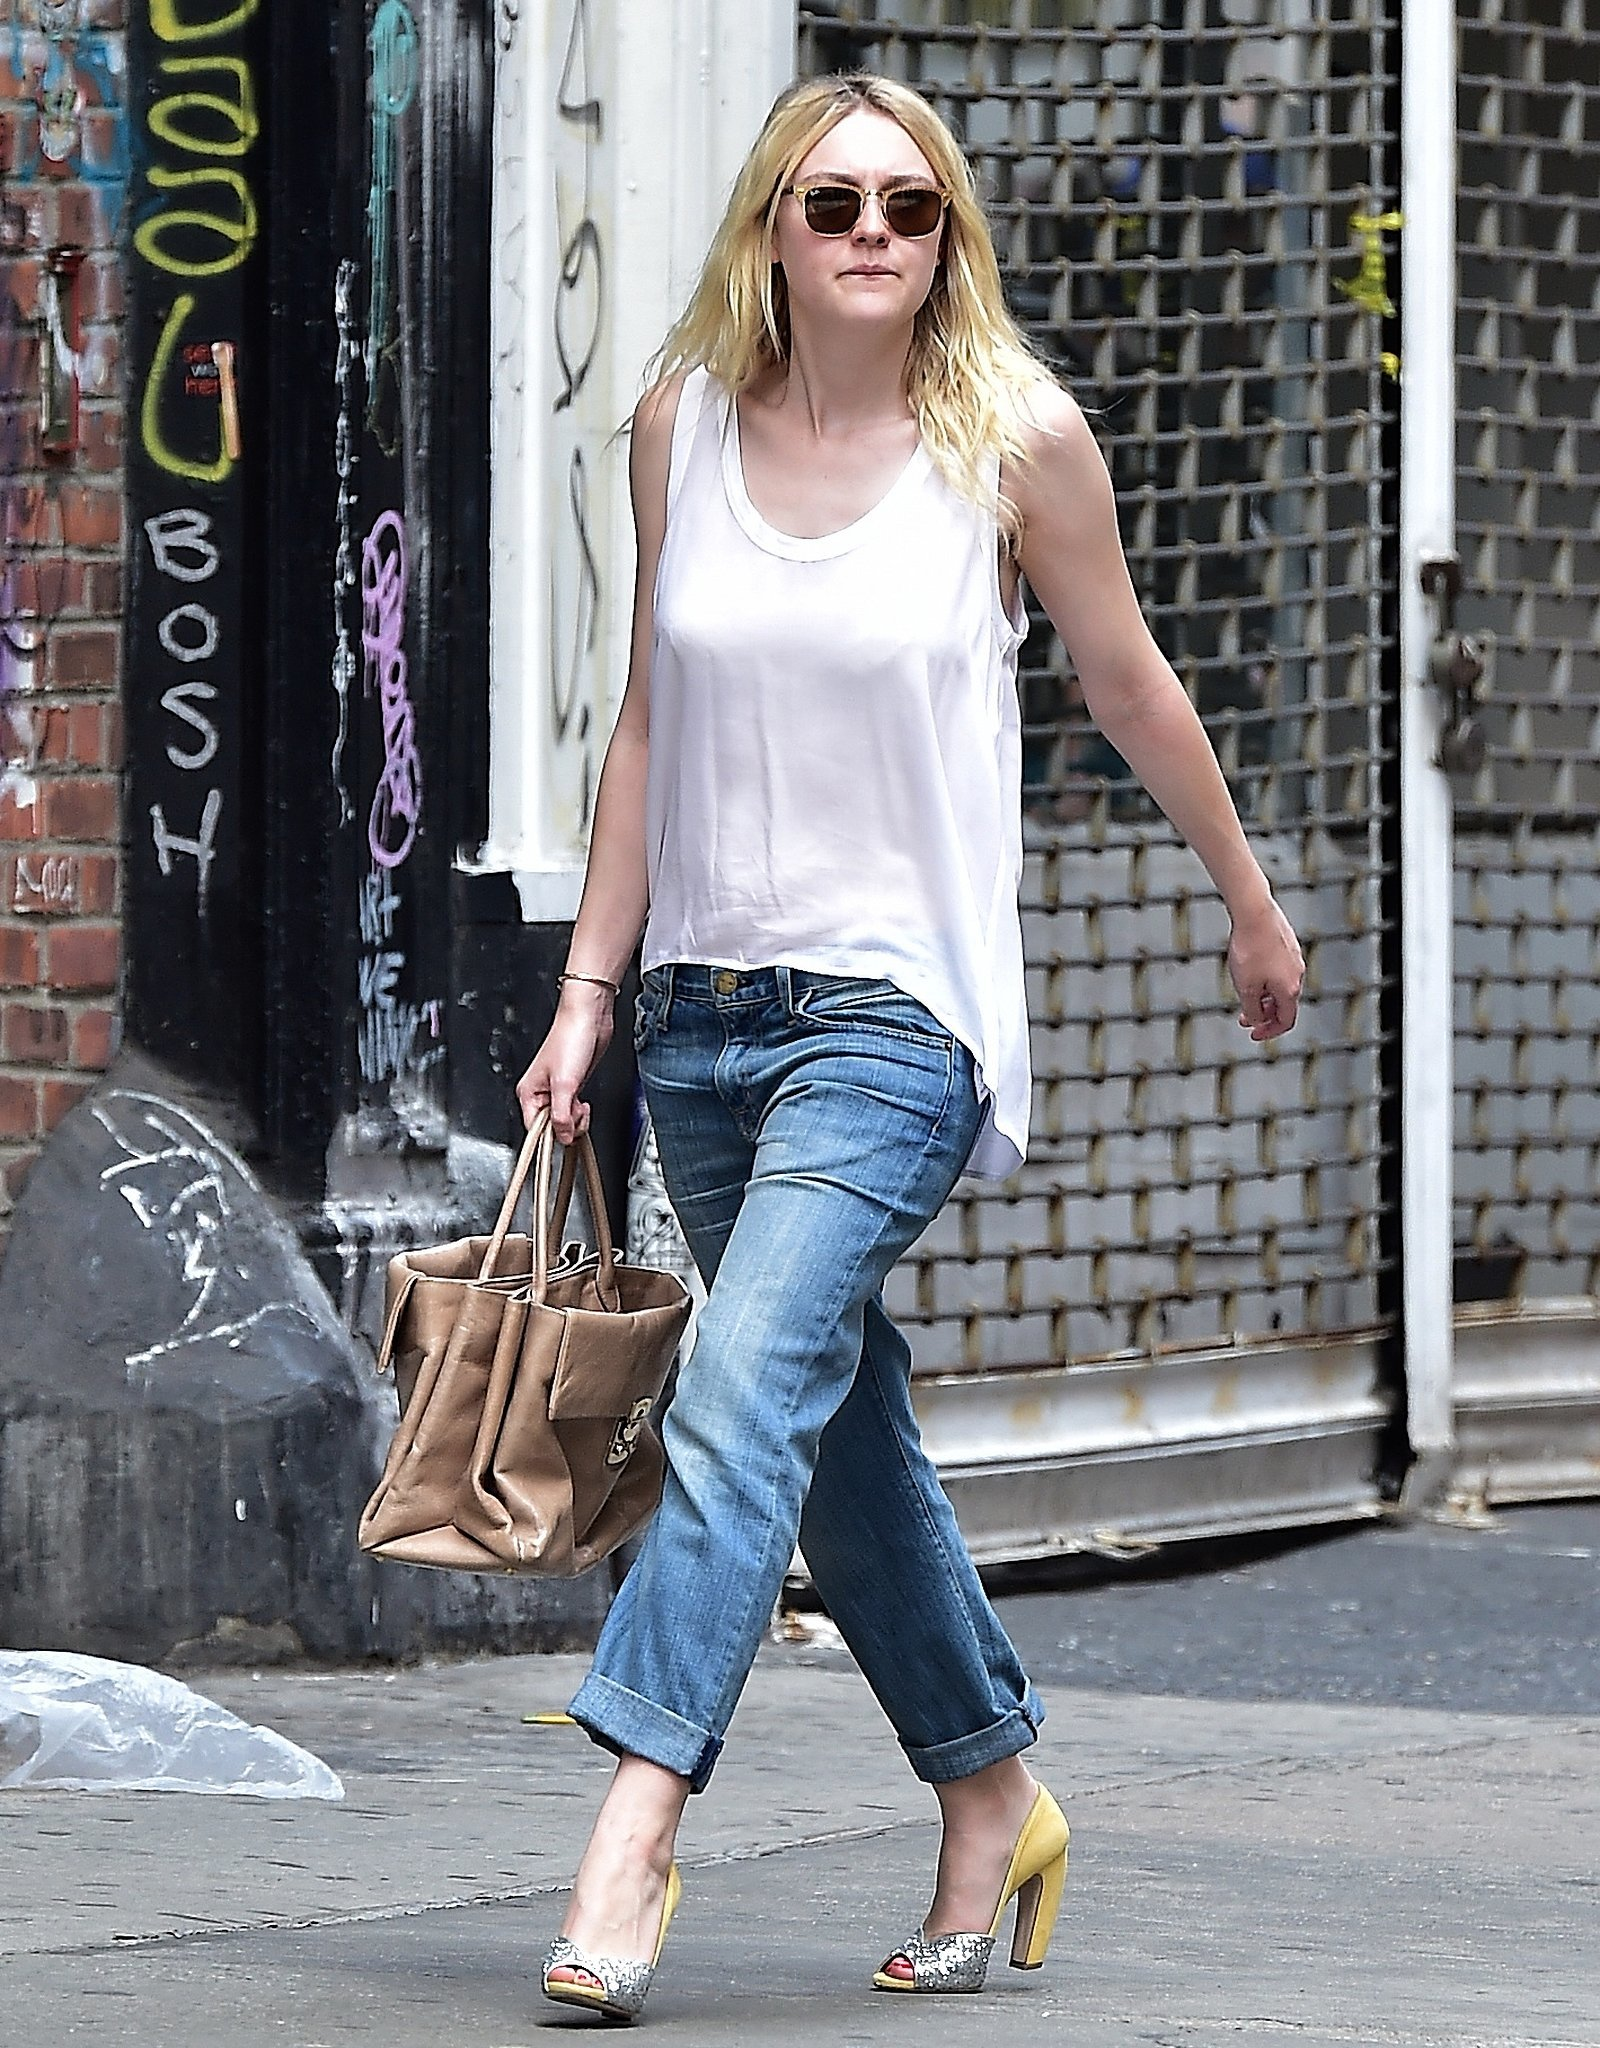 Dakota opted for a pair of slouchy Current/Elliott The Fling jeans, which she double cuffed, and a white, loose-fitting high-low top. Her accessories included a tan leather top-handle bag and matching sunglasses, and whereas we might cap off such a comfortable look with ballerina flats or smoking slippers, the stylish star elevated her ensemble with glittery, two-toned peep-toe heels. We love how she took an otherwise supercasual day look and gave it some seriously unexpected sparkle.